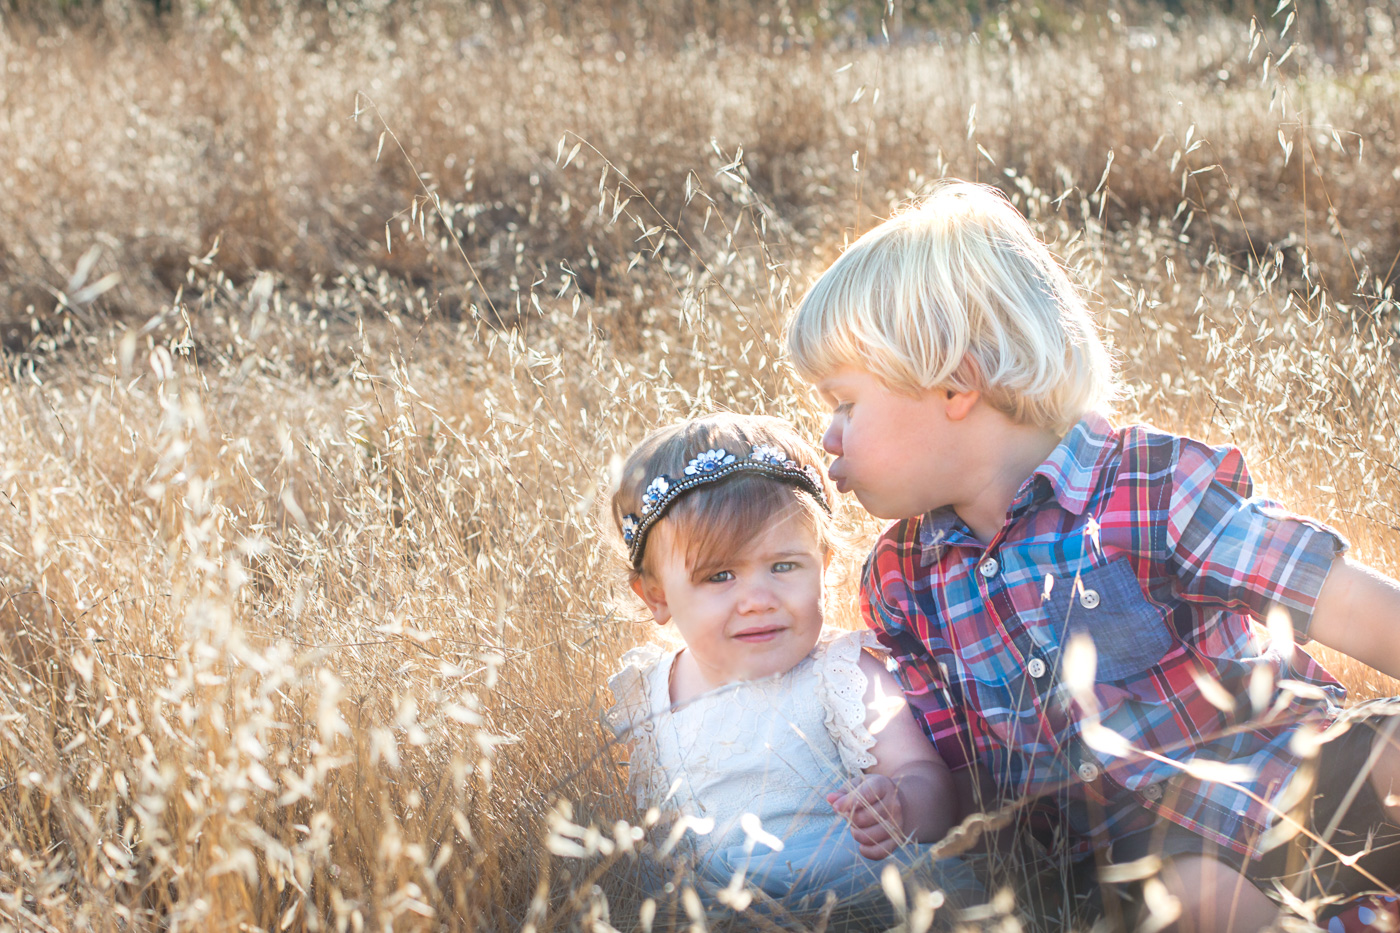 Child Photography at Baylands Park in Sunnyvale